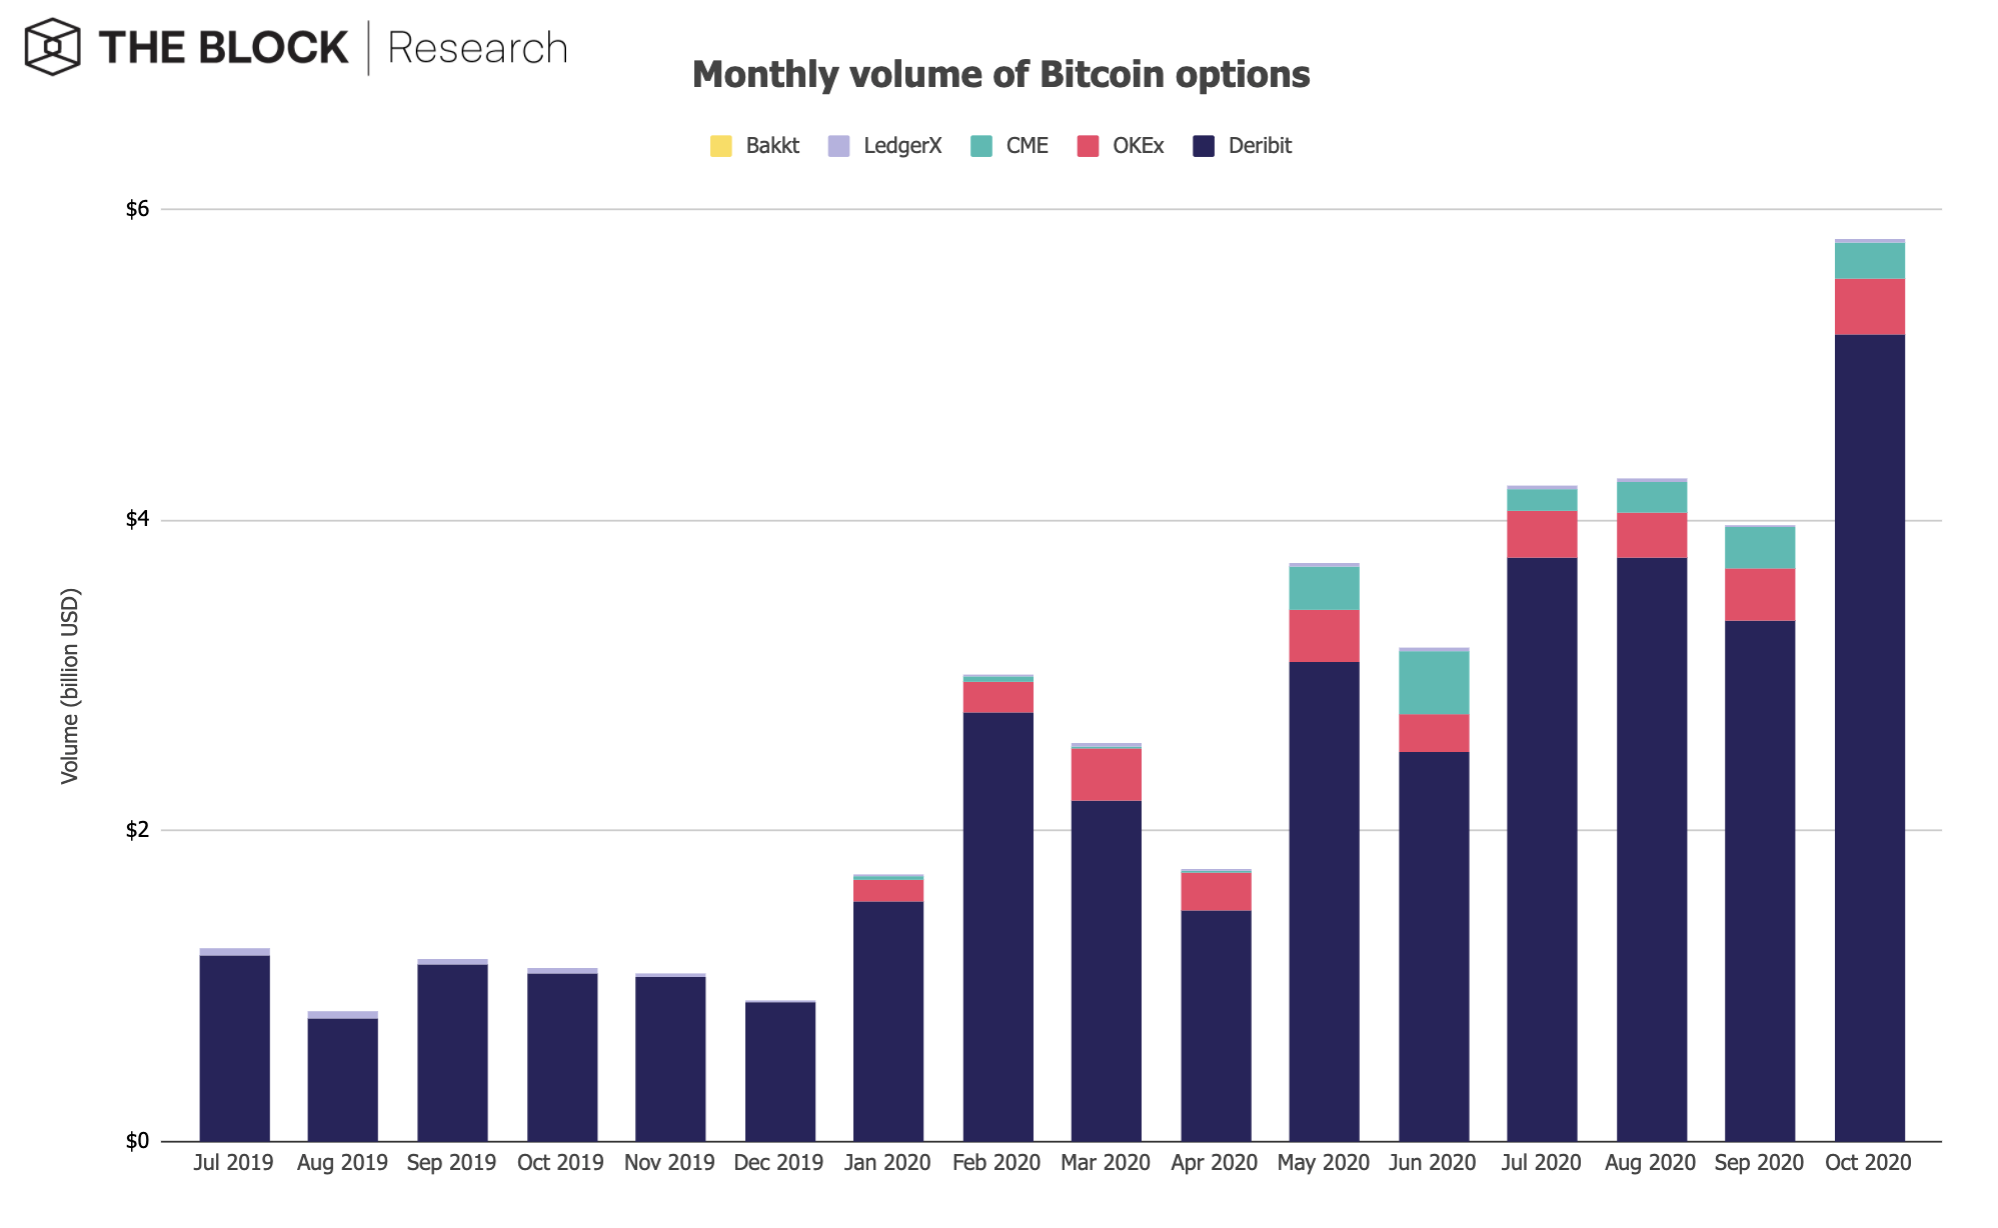 Monthly volume of Bitcoin options